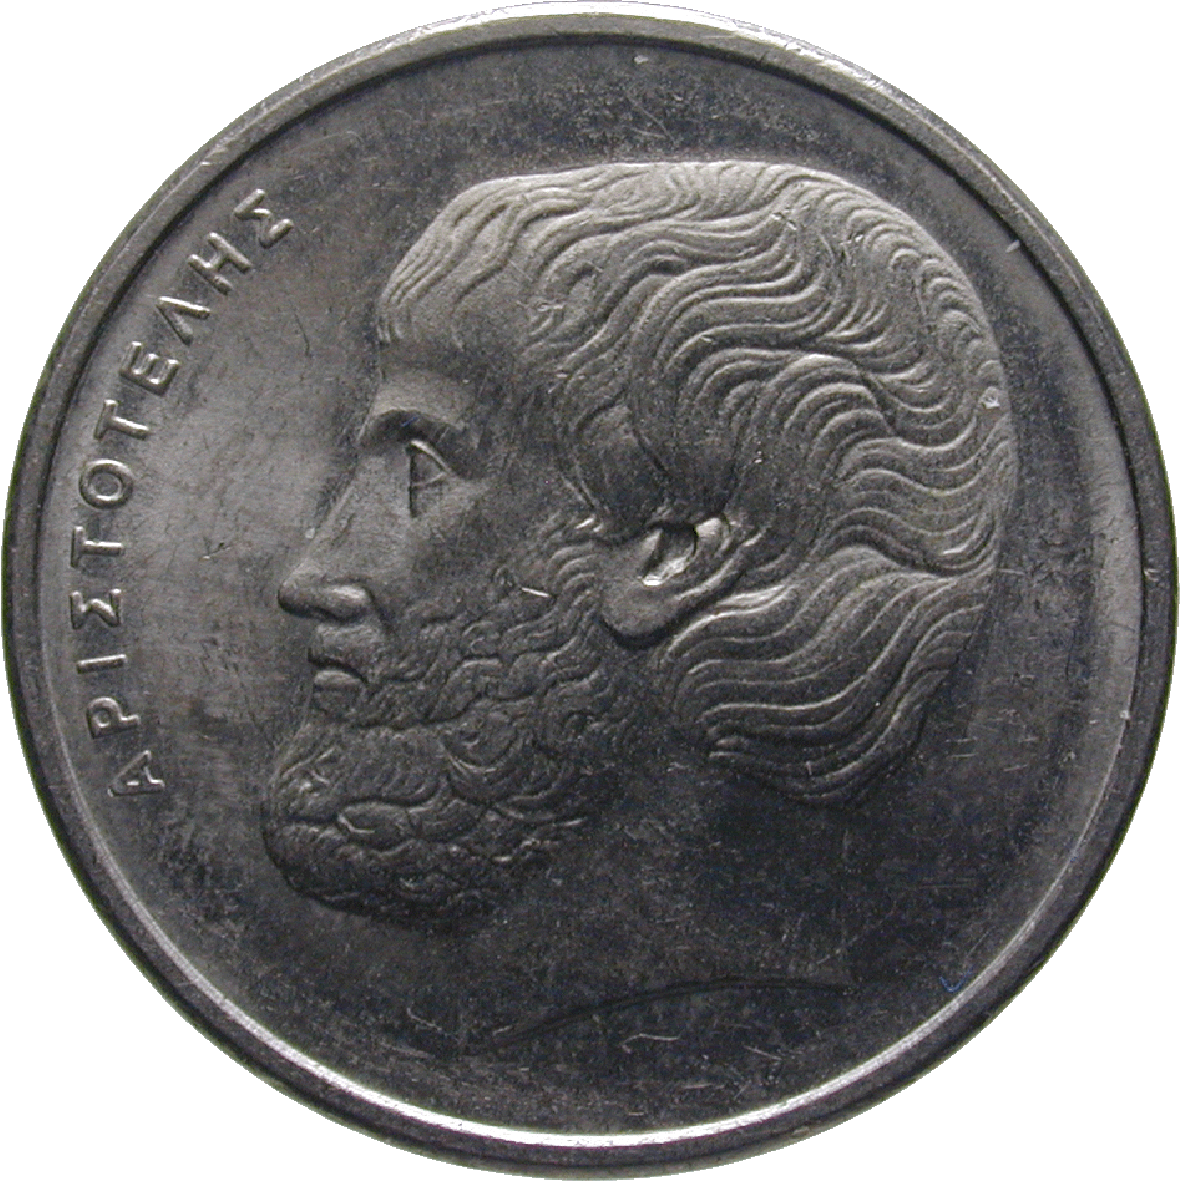 Republic of Greece, 5 Drachmai 1976 (reverse)